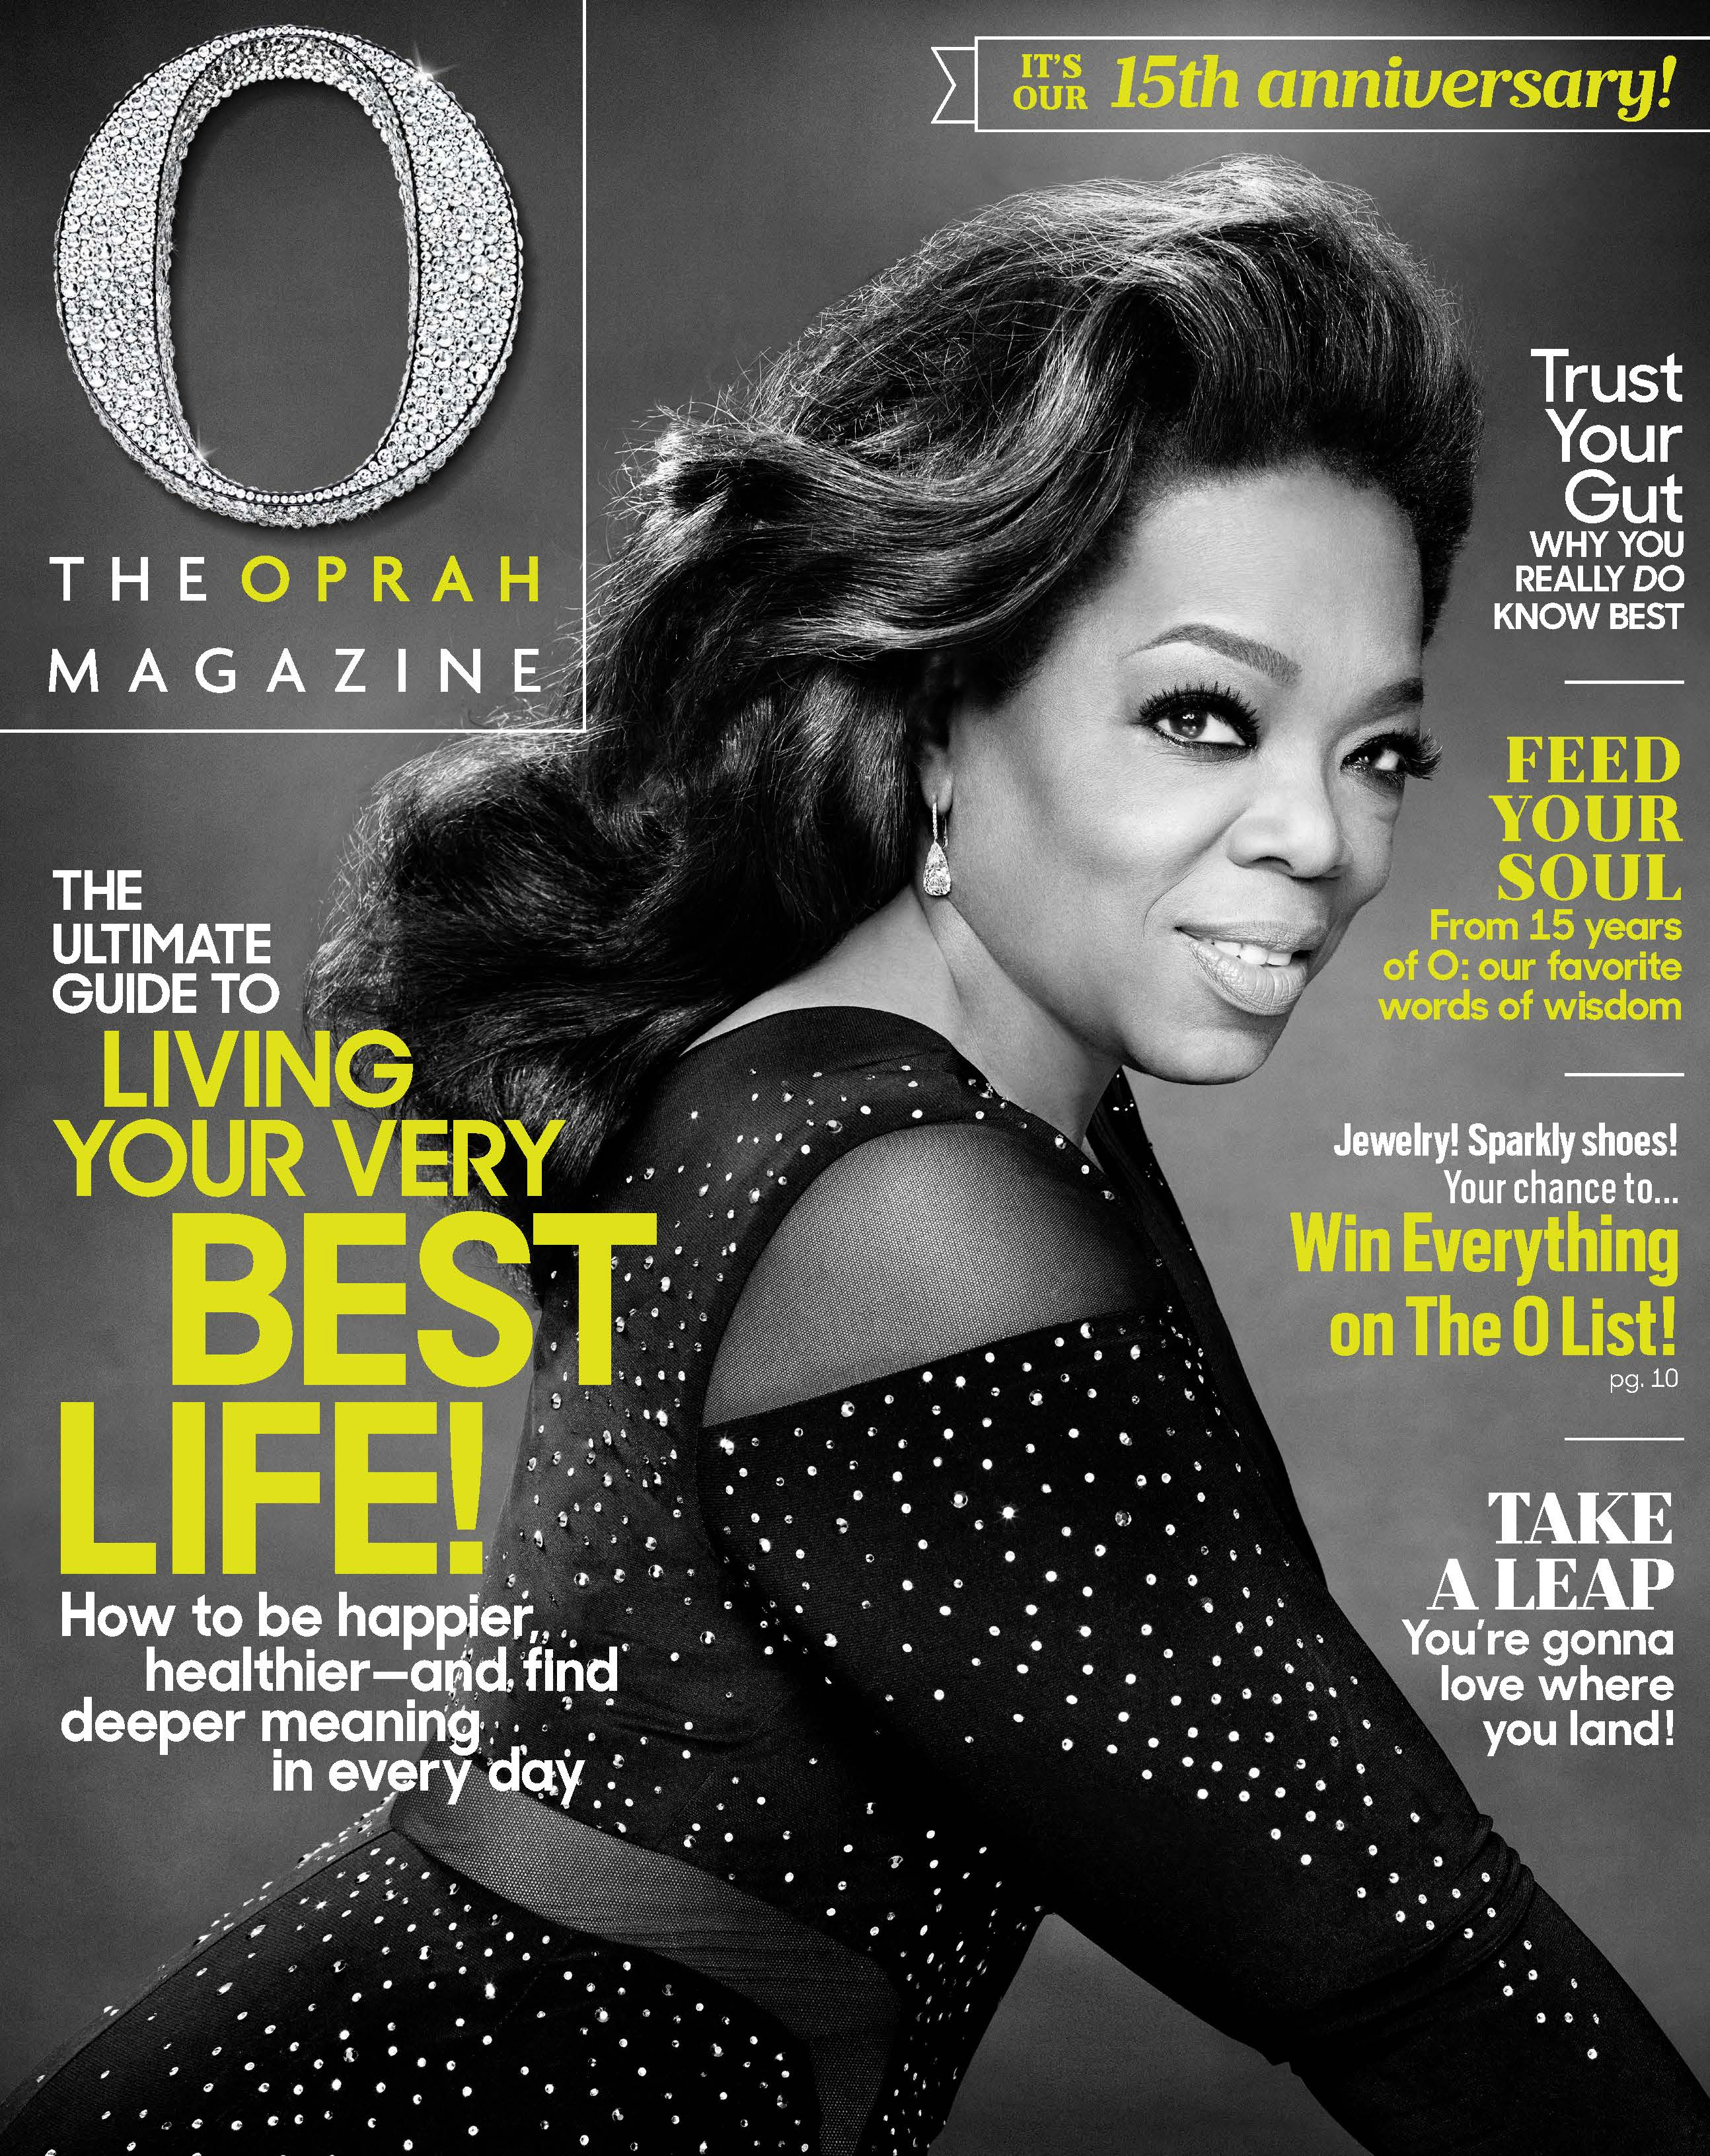 15 Years And Counting – O, The Oprah Magazine Celebrates The Major ...